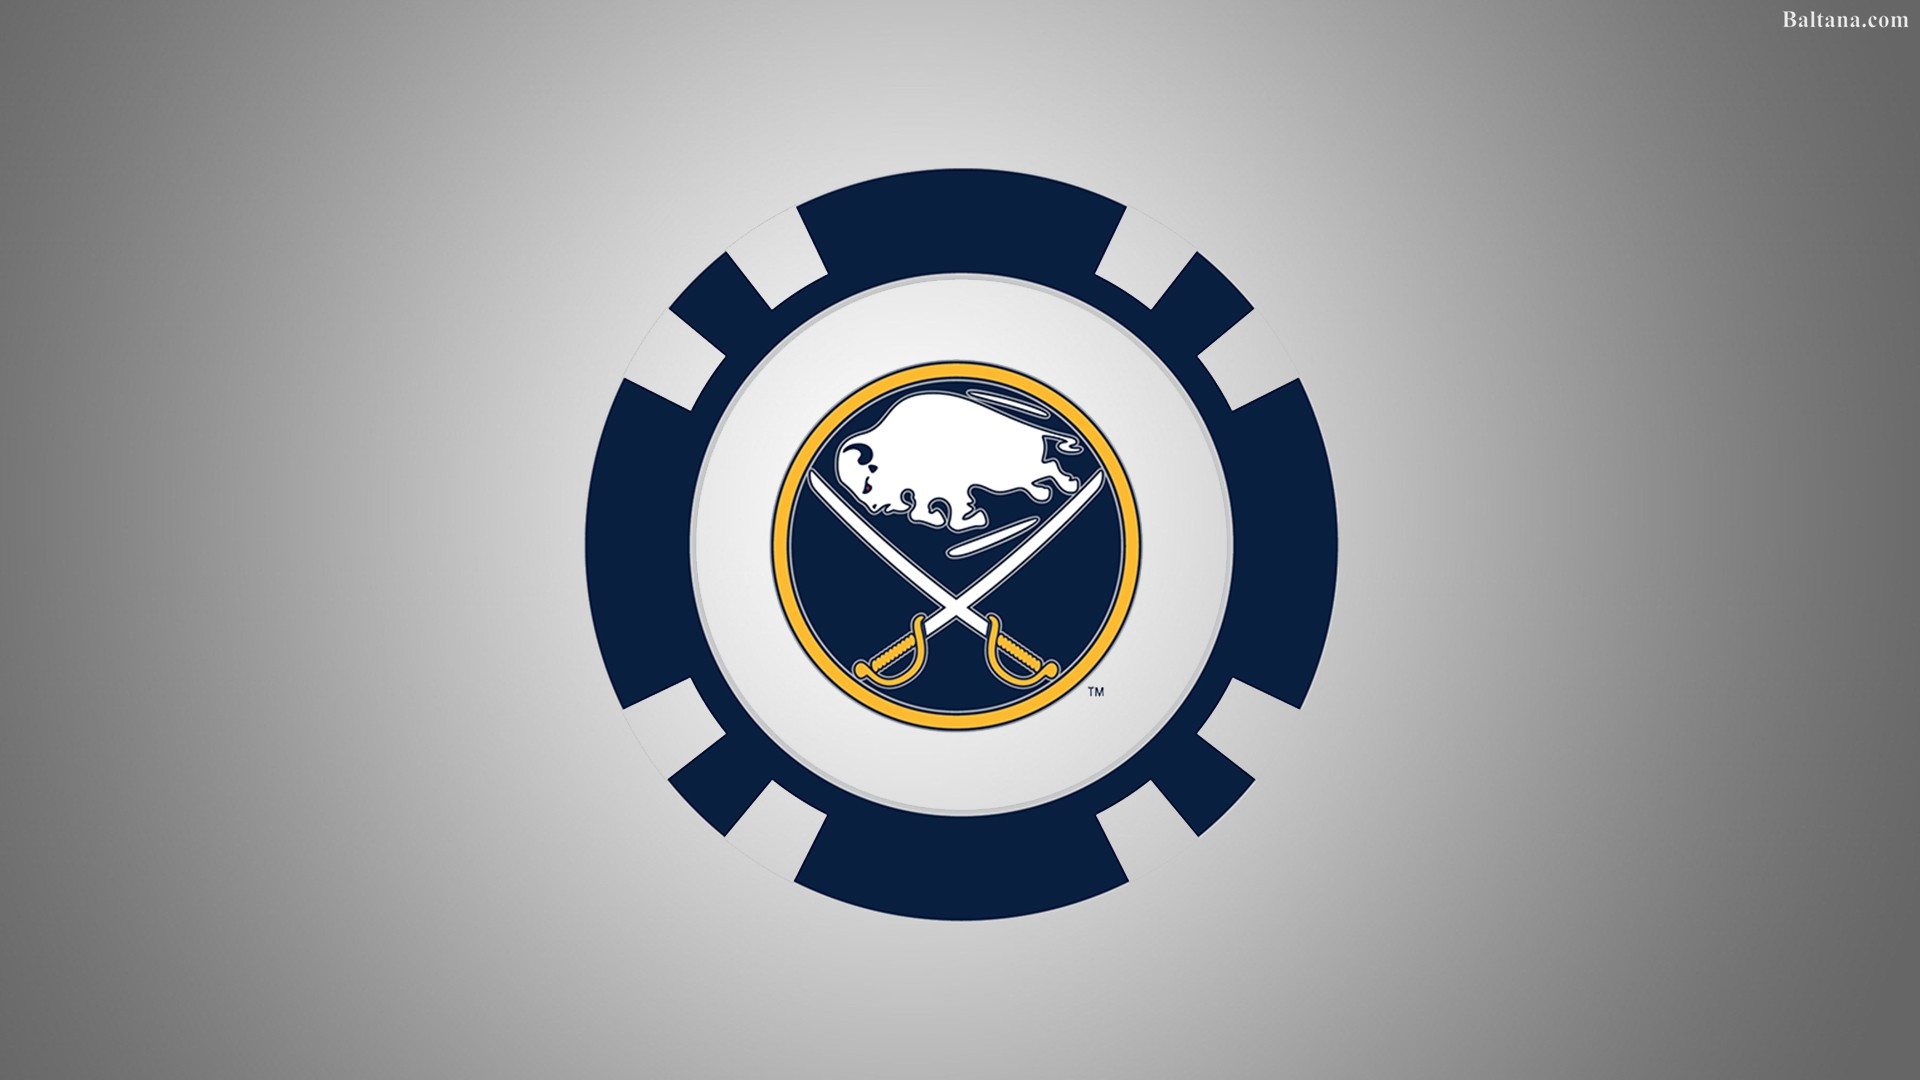 1920x1080 - Buffalo Sabres Wallpapers 6